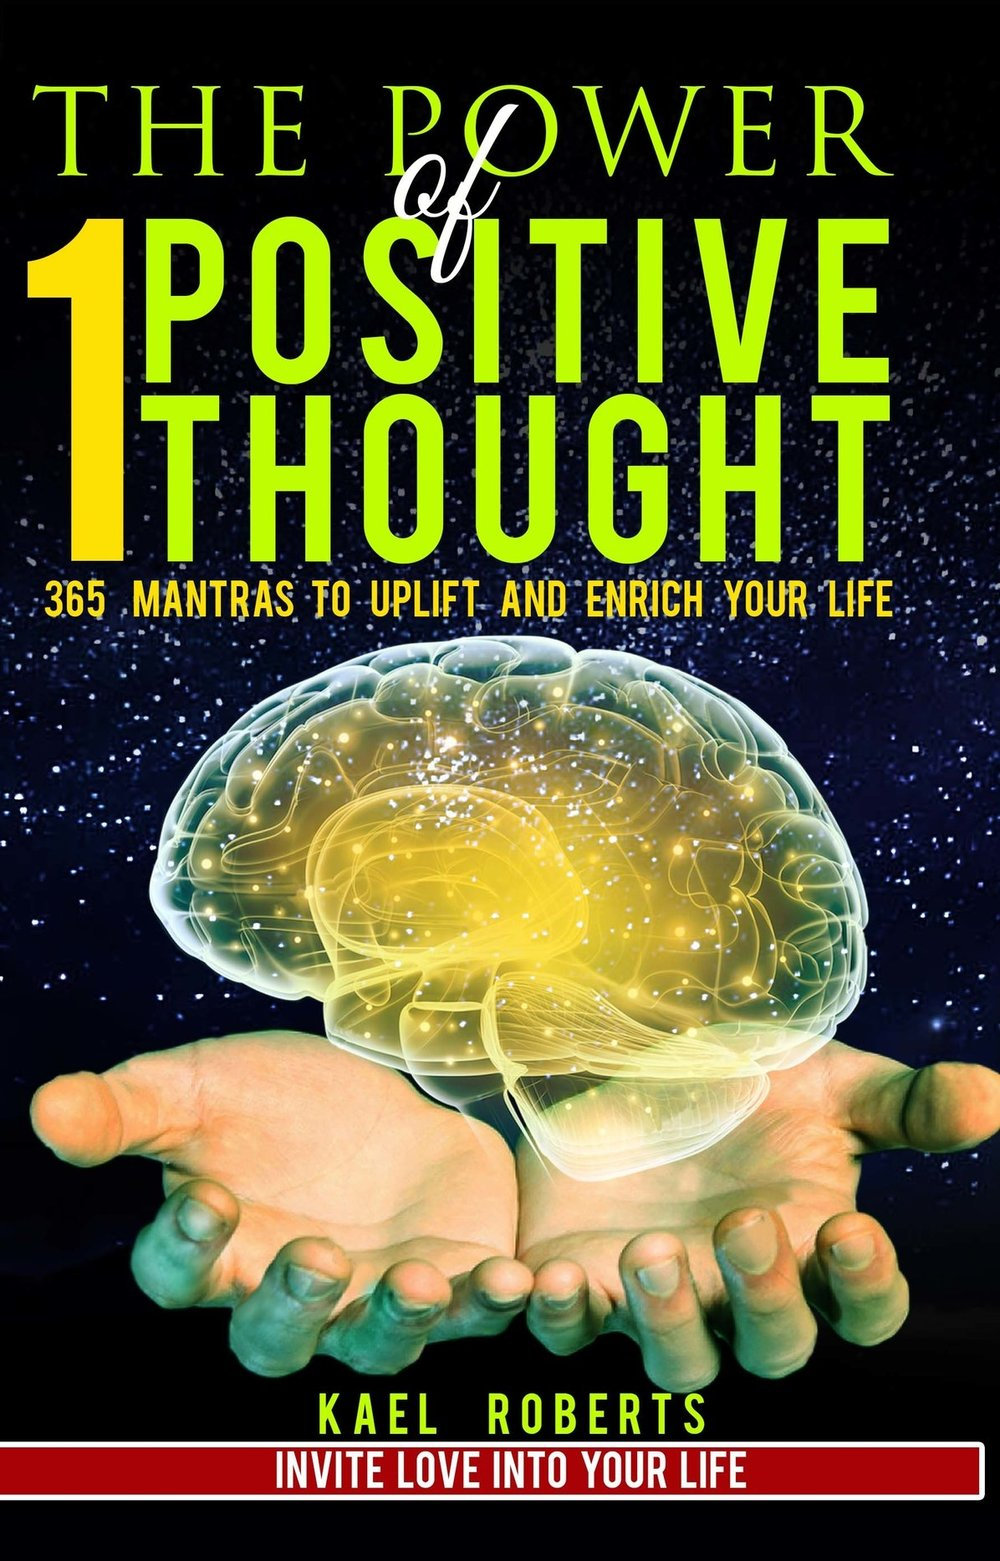 "Get my Book - Download your digital copy of The Power of 1 Positive Thought.This book is a daily mantra book, written to help set the positive intention for your mind and your day. By beginning your day with this book, and the 365 inspired mantras, you will begin to see the mindset shift from a chaotic and stressed thinking pattern, do a more calm, understanding, grateful and ""chill"" mindset."